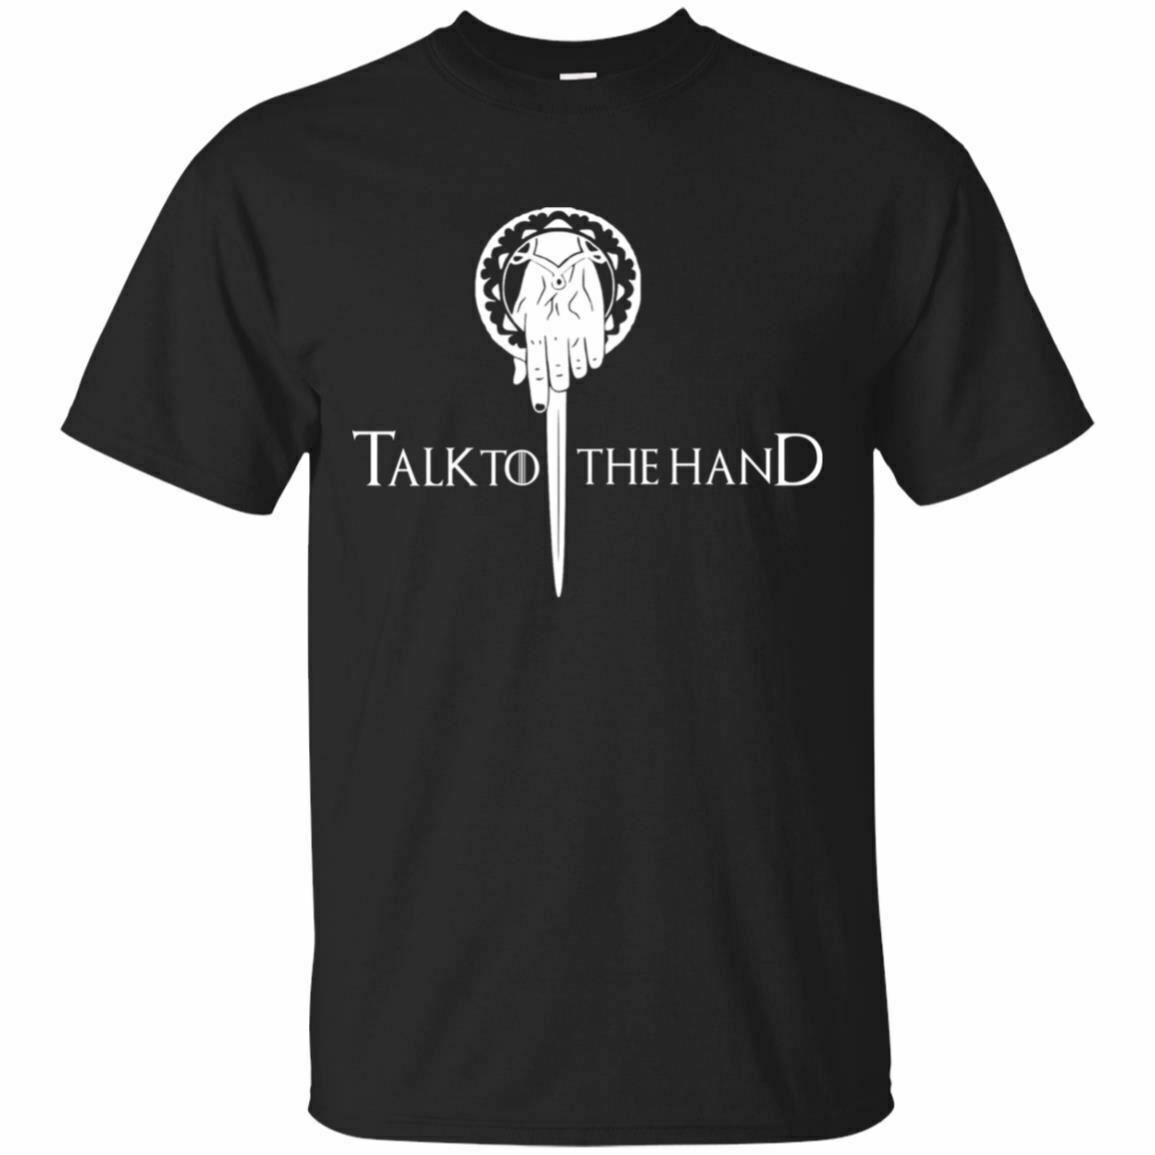 Power game T-shirt and manual Tyrion Lannister T-shirt short sleeve high end custom short sleeve